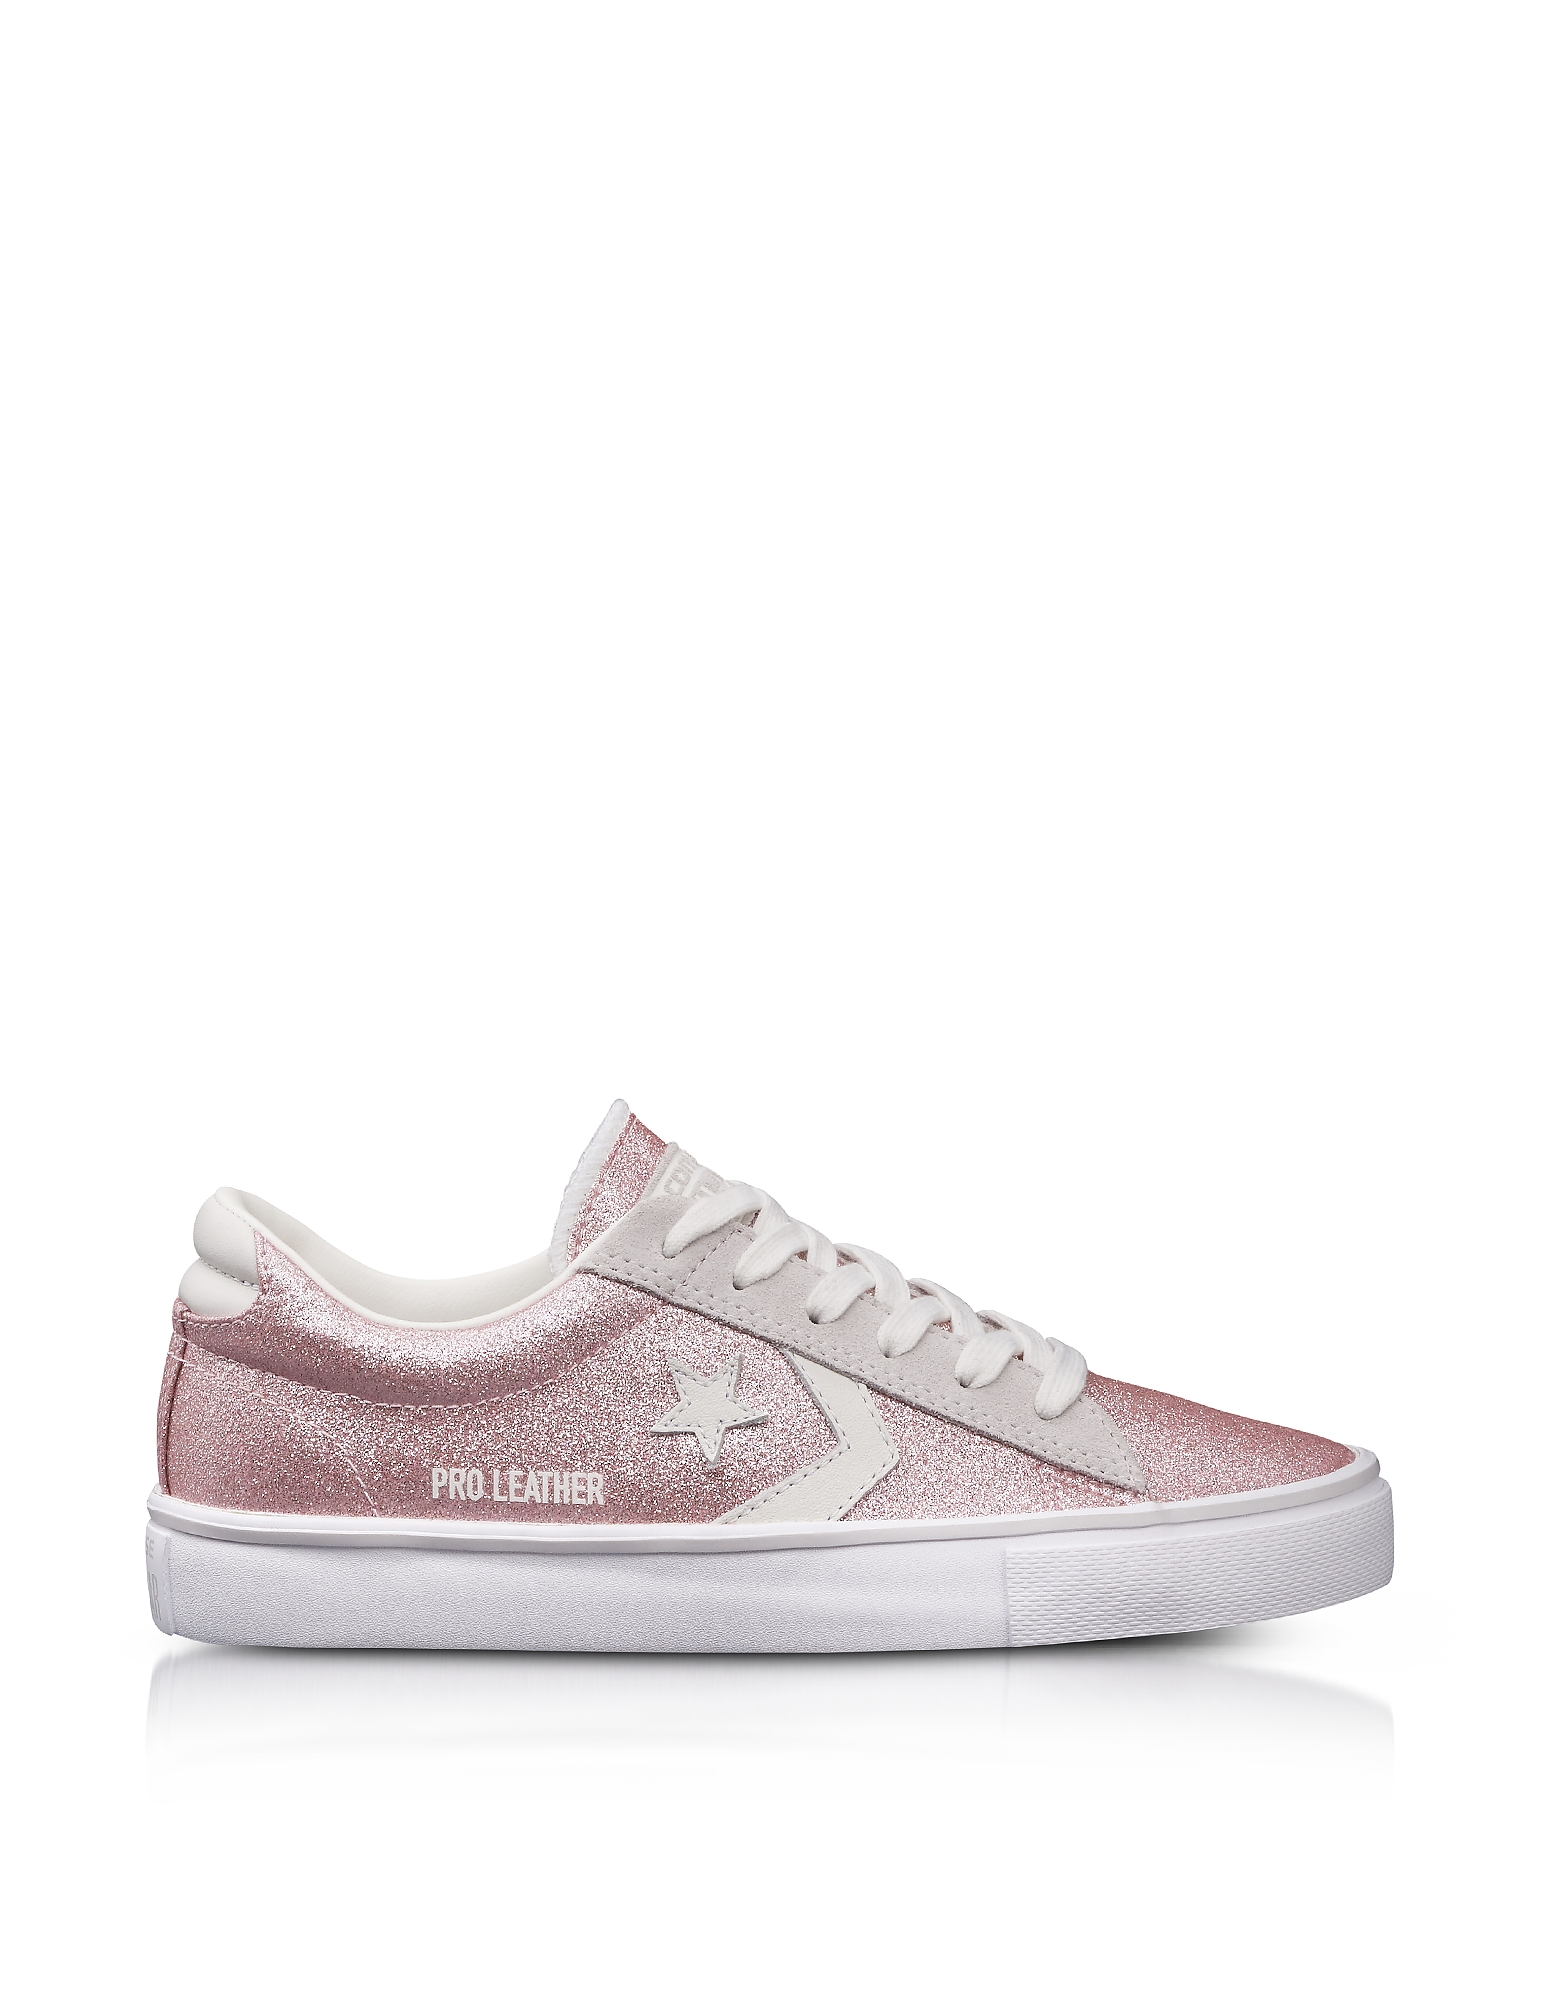 Converse Limited Edition Shoes, Pro Leather Vulc Blossom Pink Glitter and Suede Sneakers